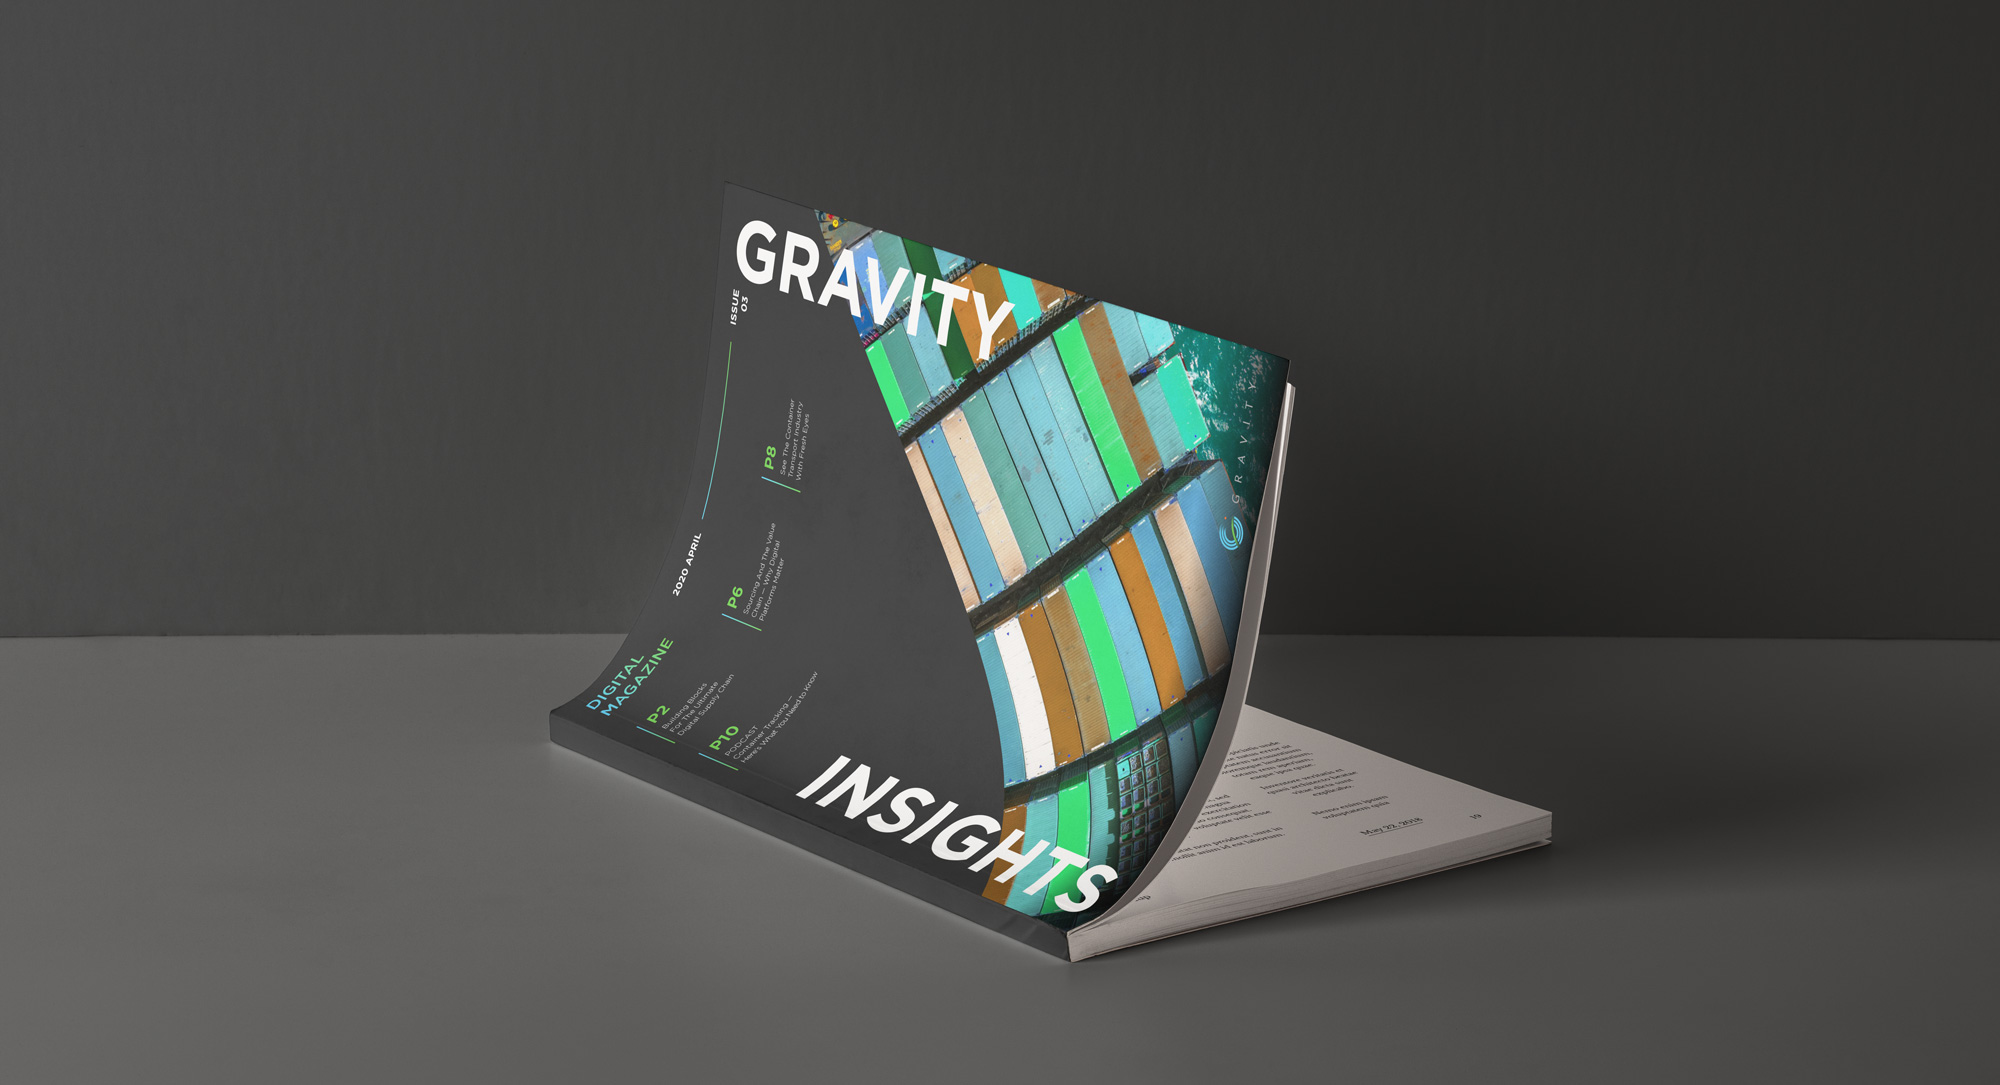 Gravity-Insights-Issue-03-2020-April-intext